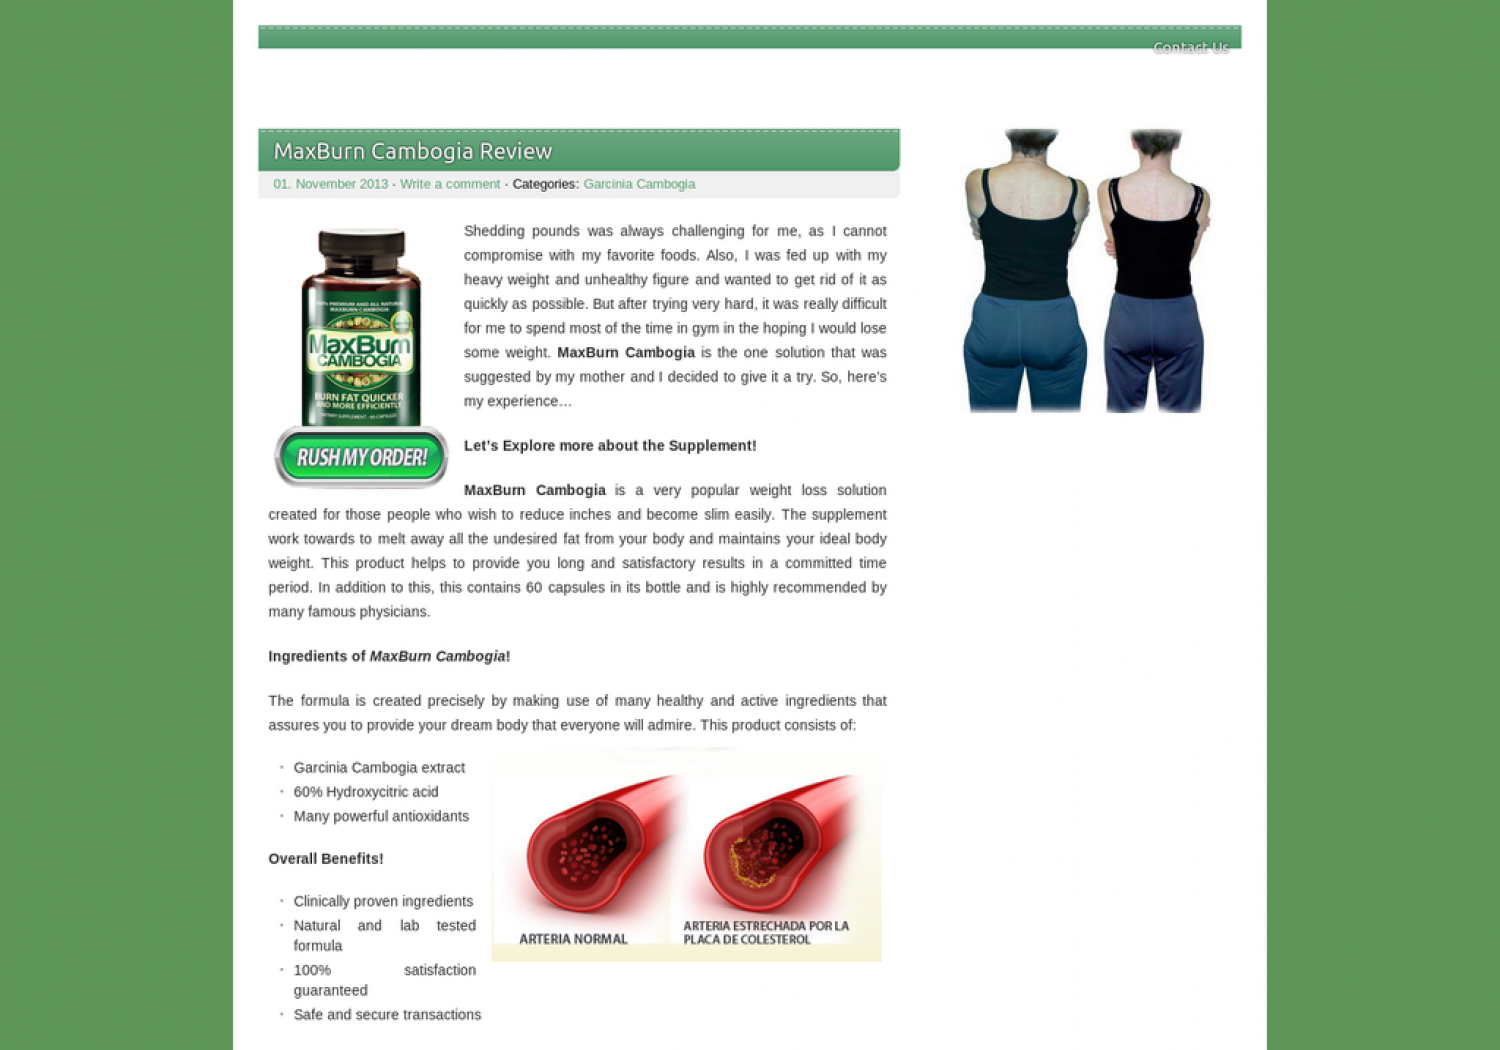 MaxBurn Cambogia - Burn Undesired Body Fat and Look Slim! Infographic